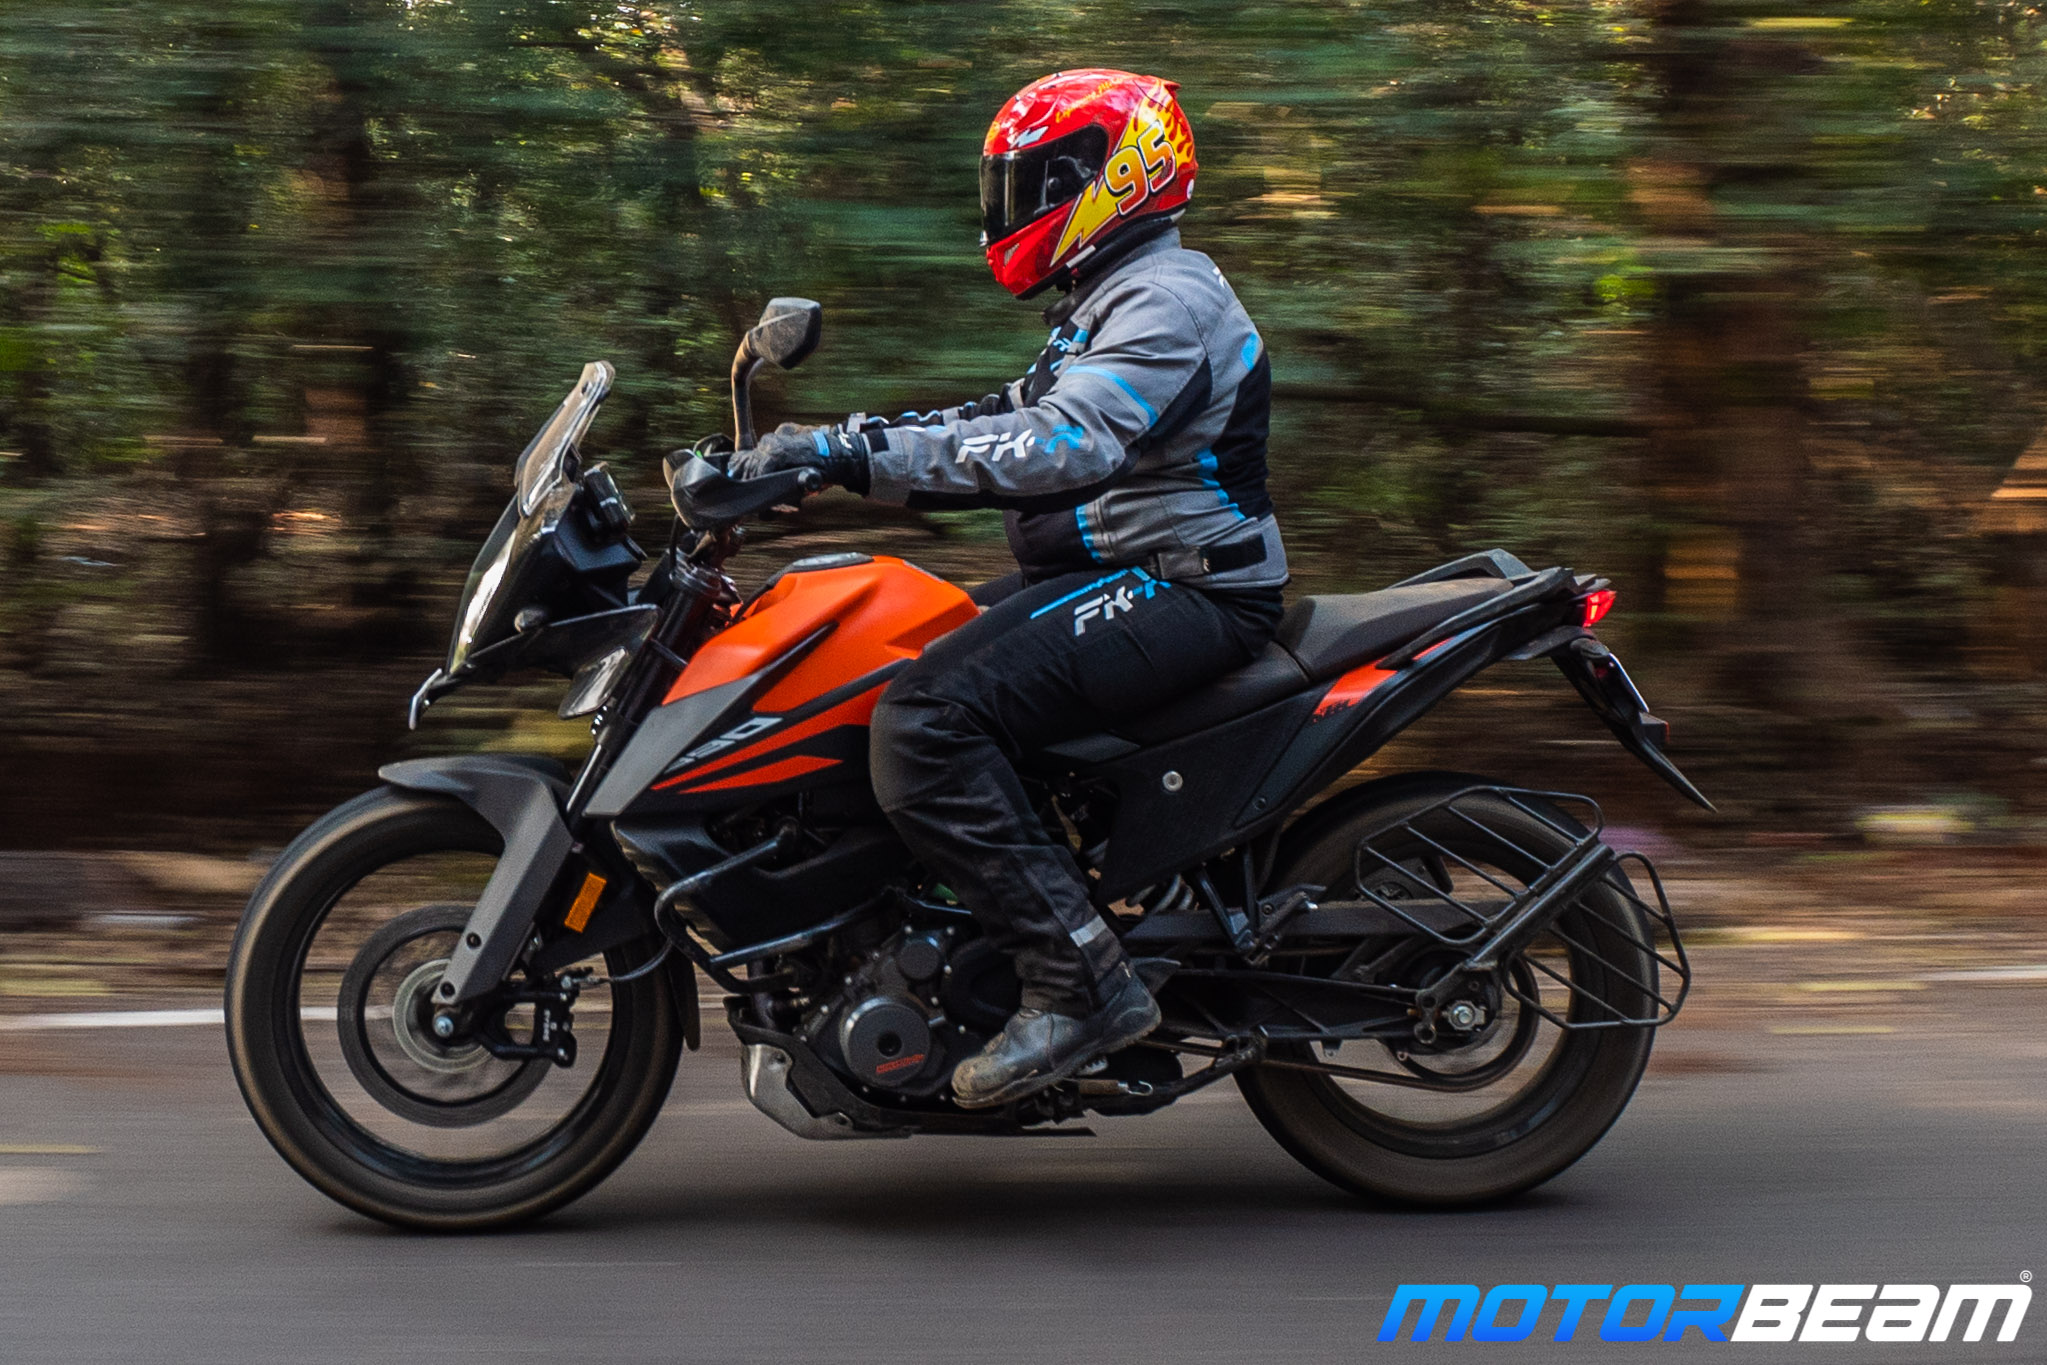 KTM 390 Adventure Off-Road Motorcycle